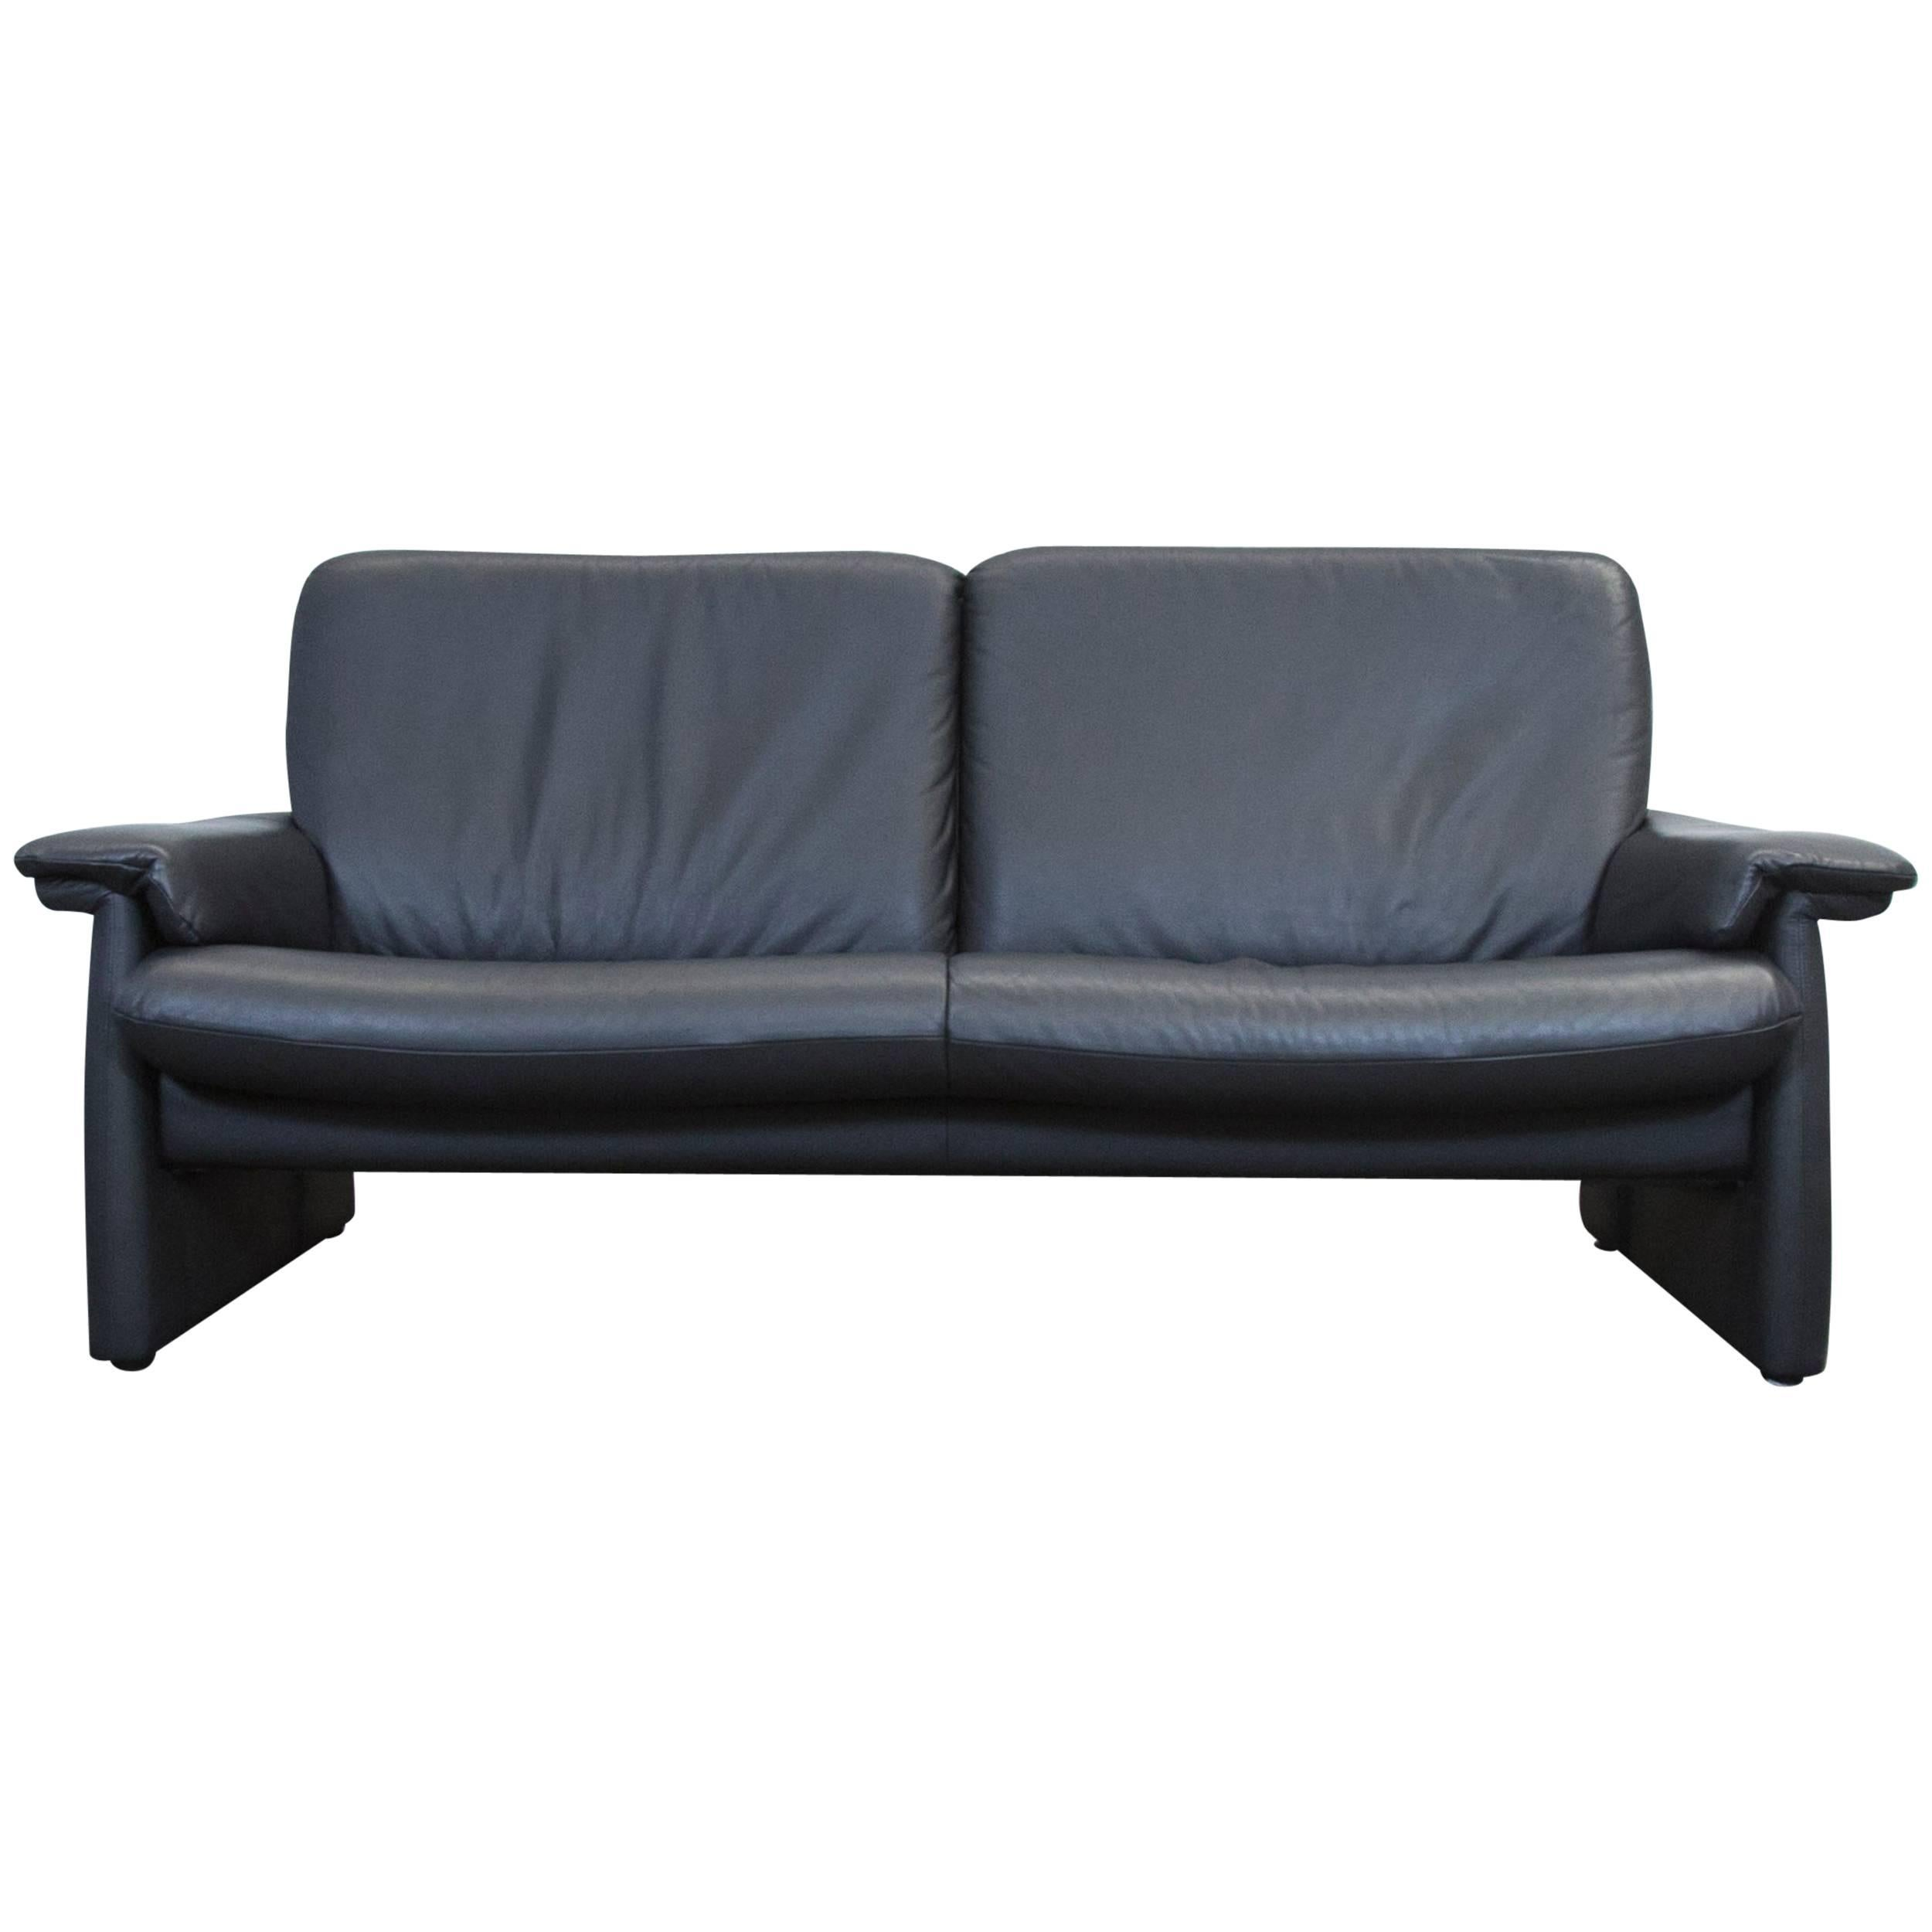 Laauser Designer Sofa Black Leather Three Seat Couch Modern For Sale At  1stdibs